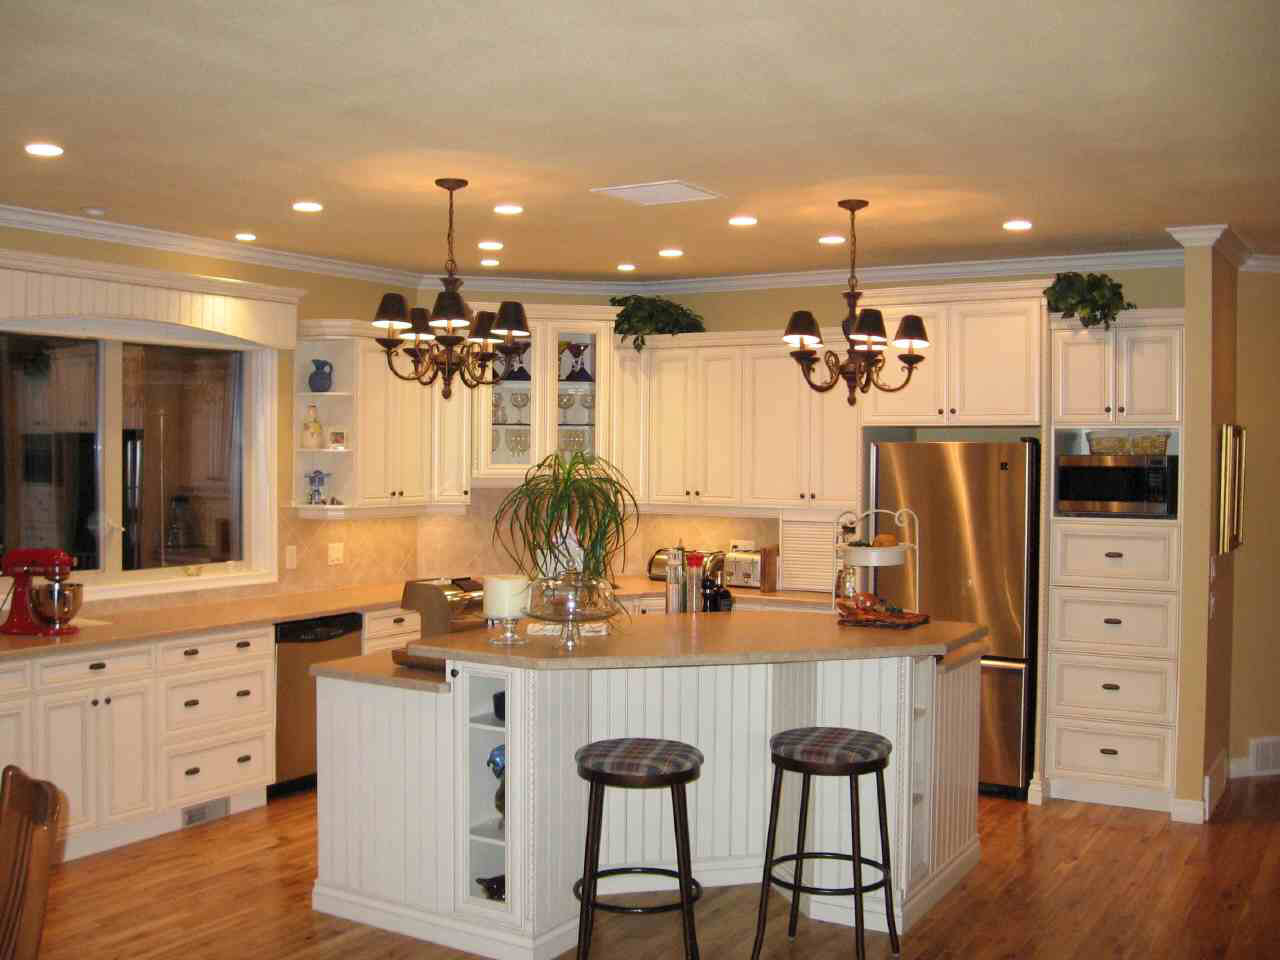 Amazing Kitchen Island Design Ideas for Small Kitchens 1280 x 960 · 109 kB · jpeg